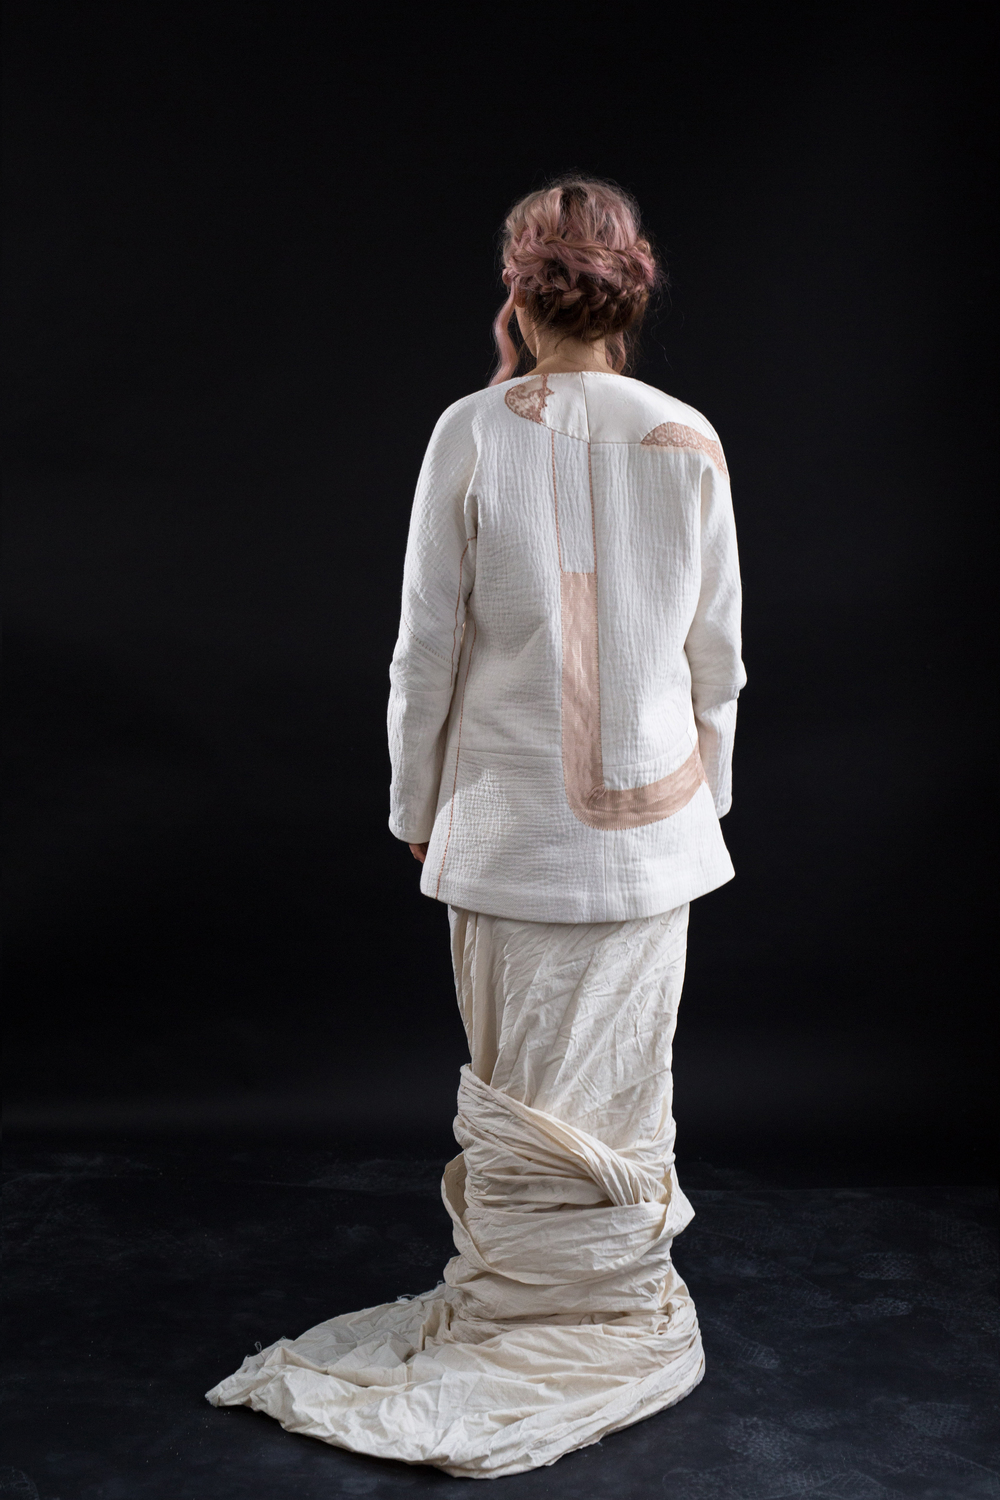 zero-waste-apparel-s02-064.jpg